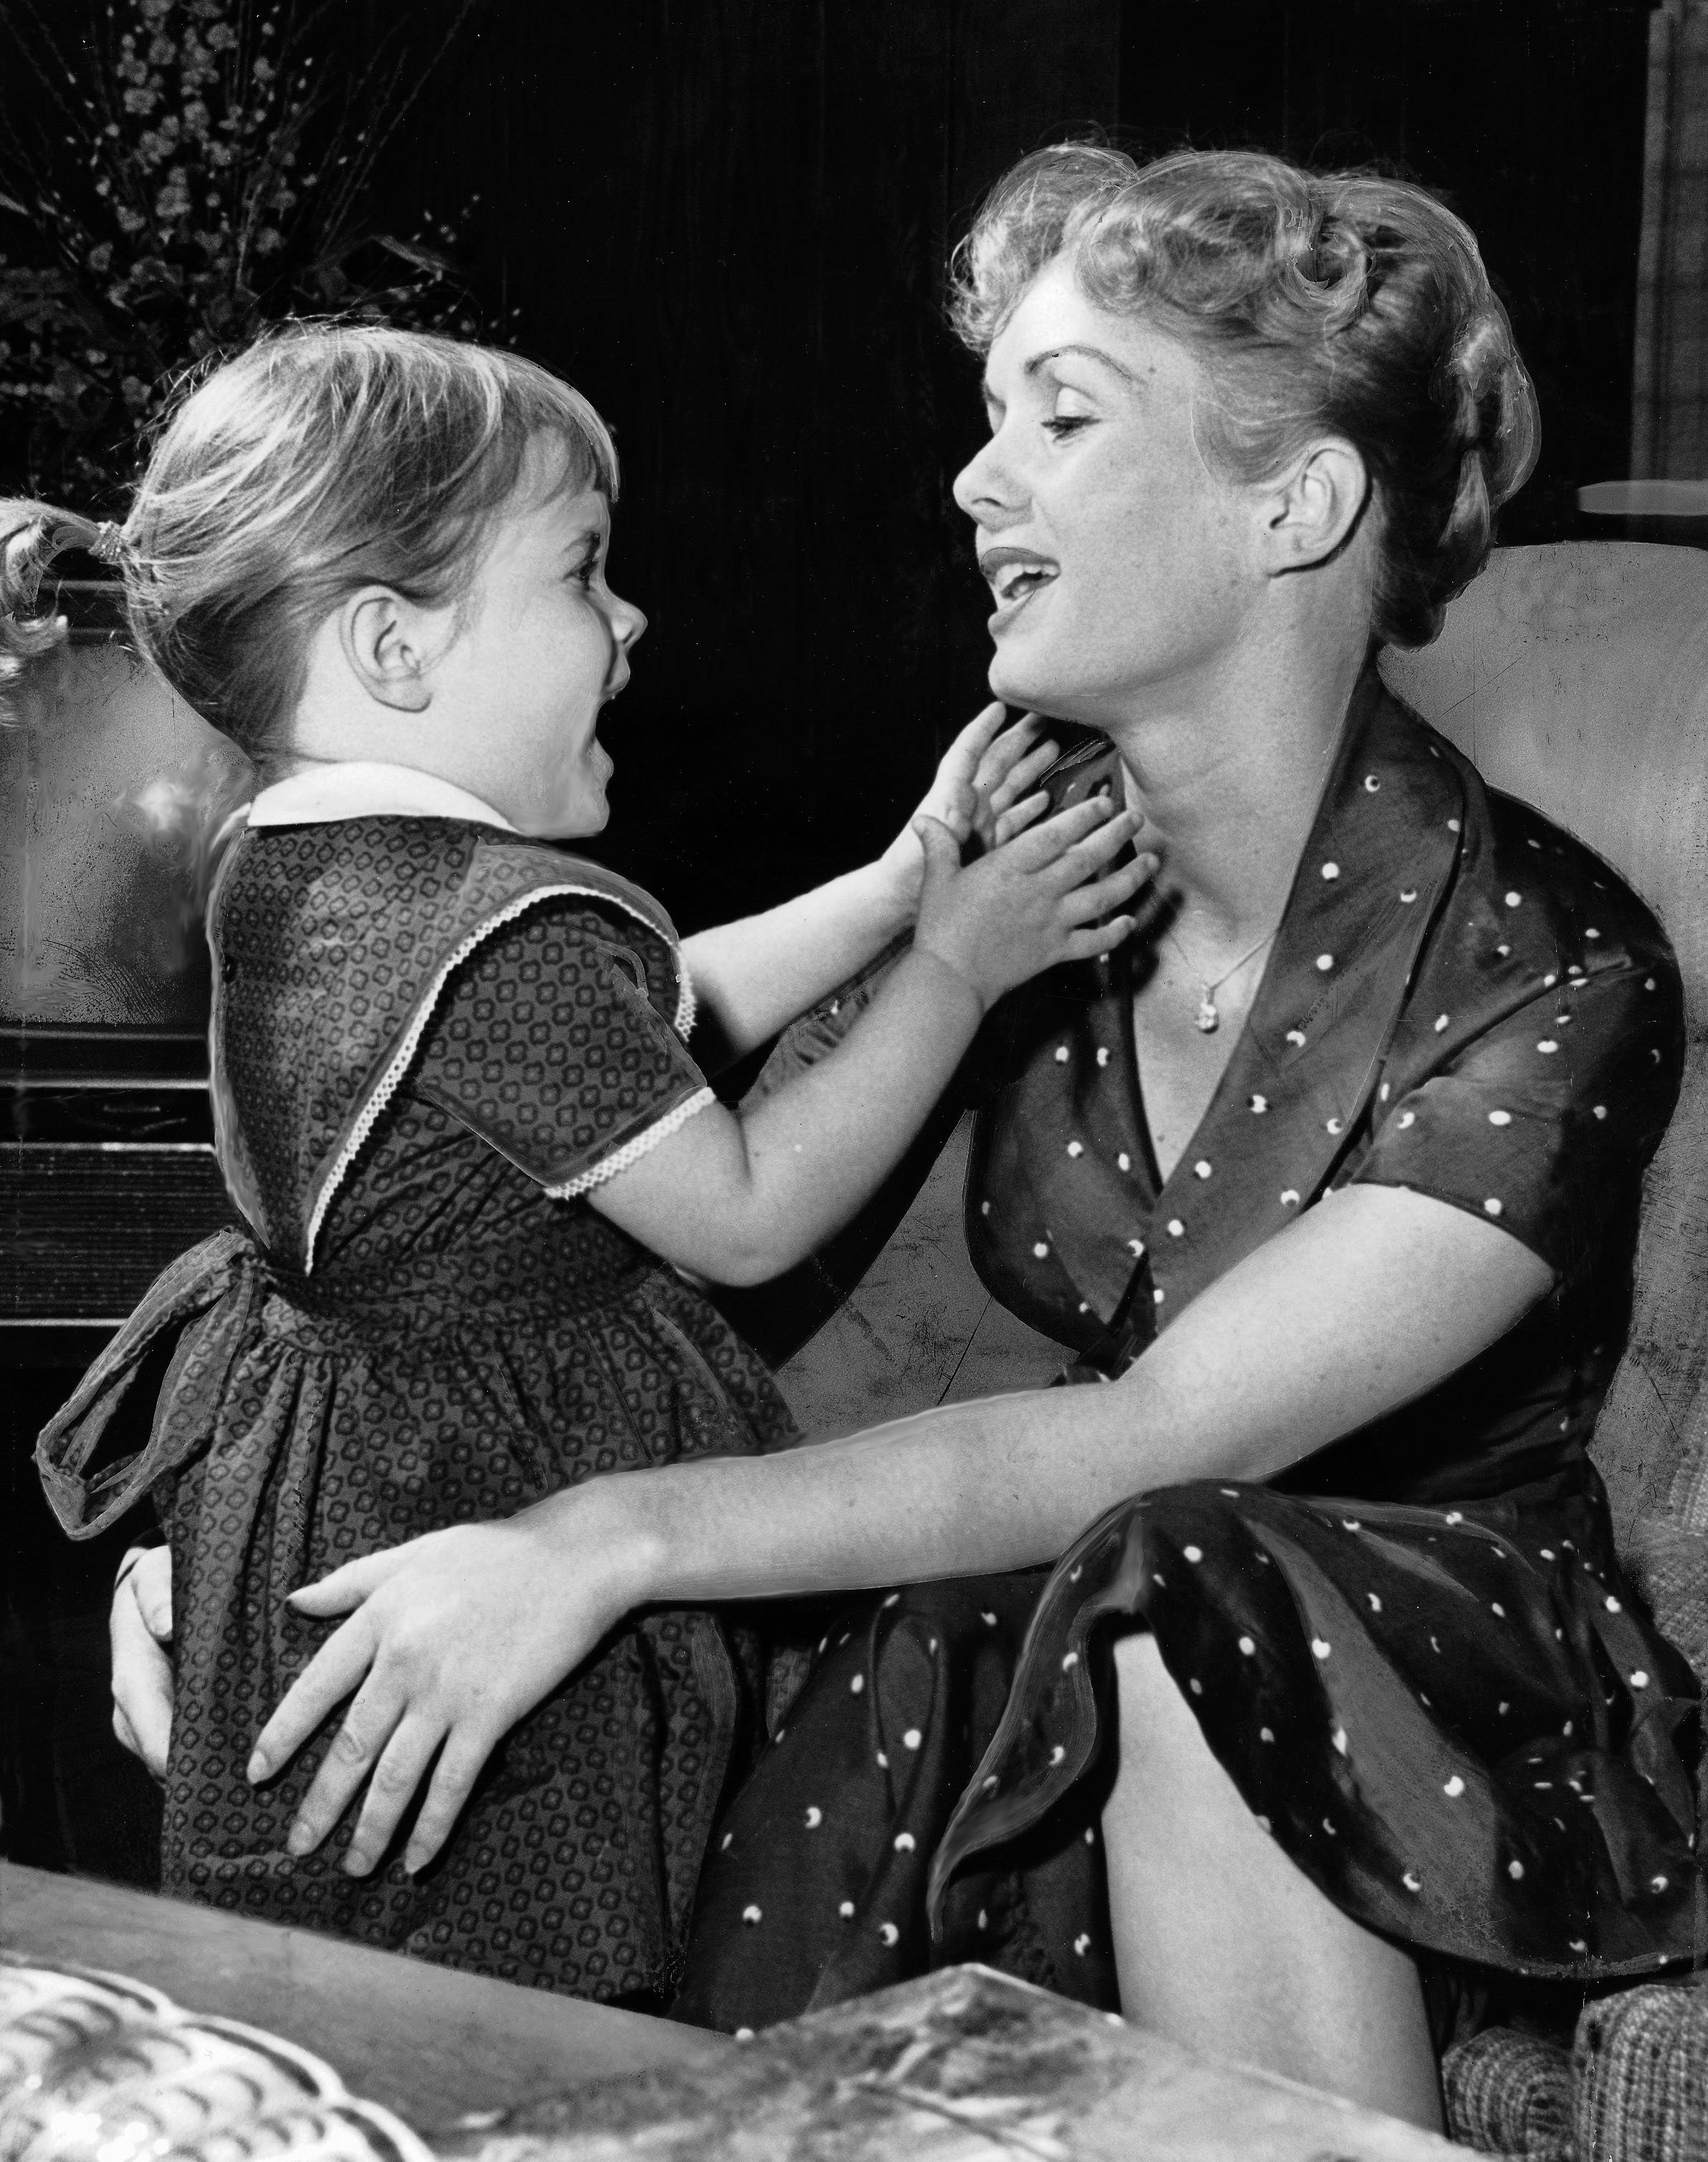 Debbie Reynolds with 3-year-old Carrie at home on November 16, 1959, in Los Angeles.